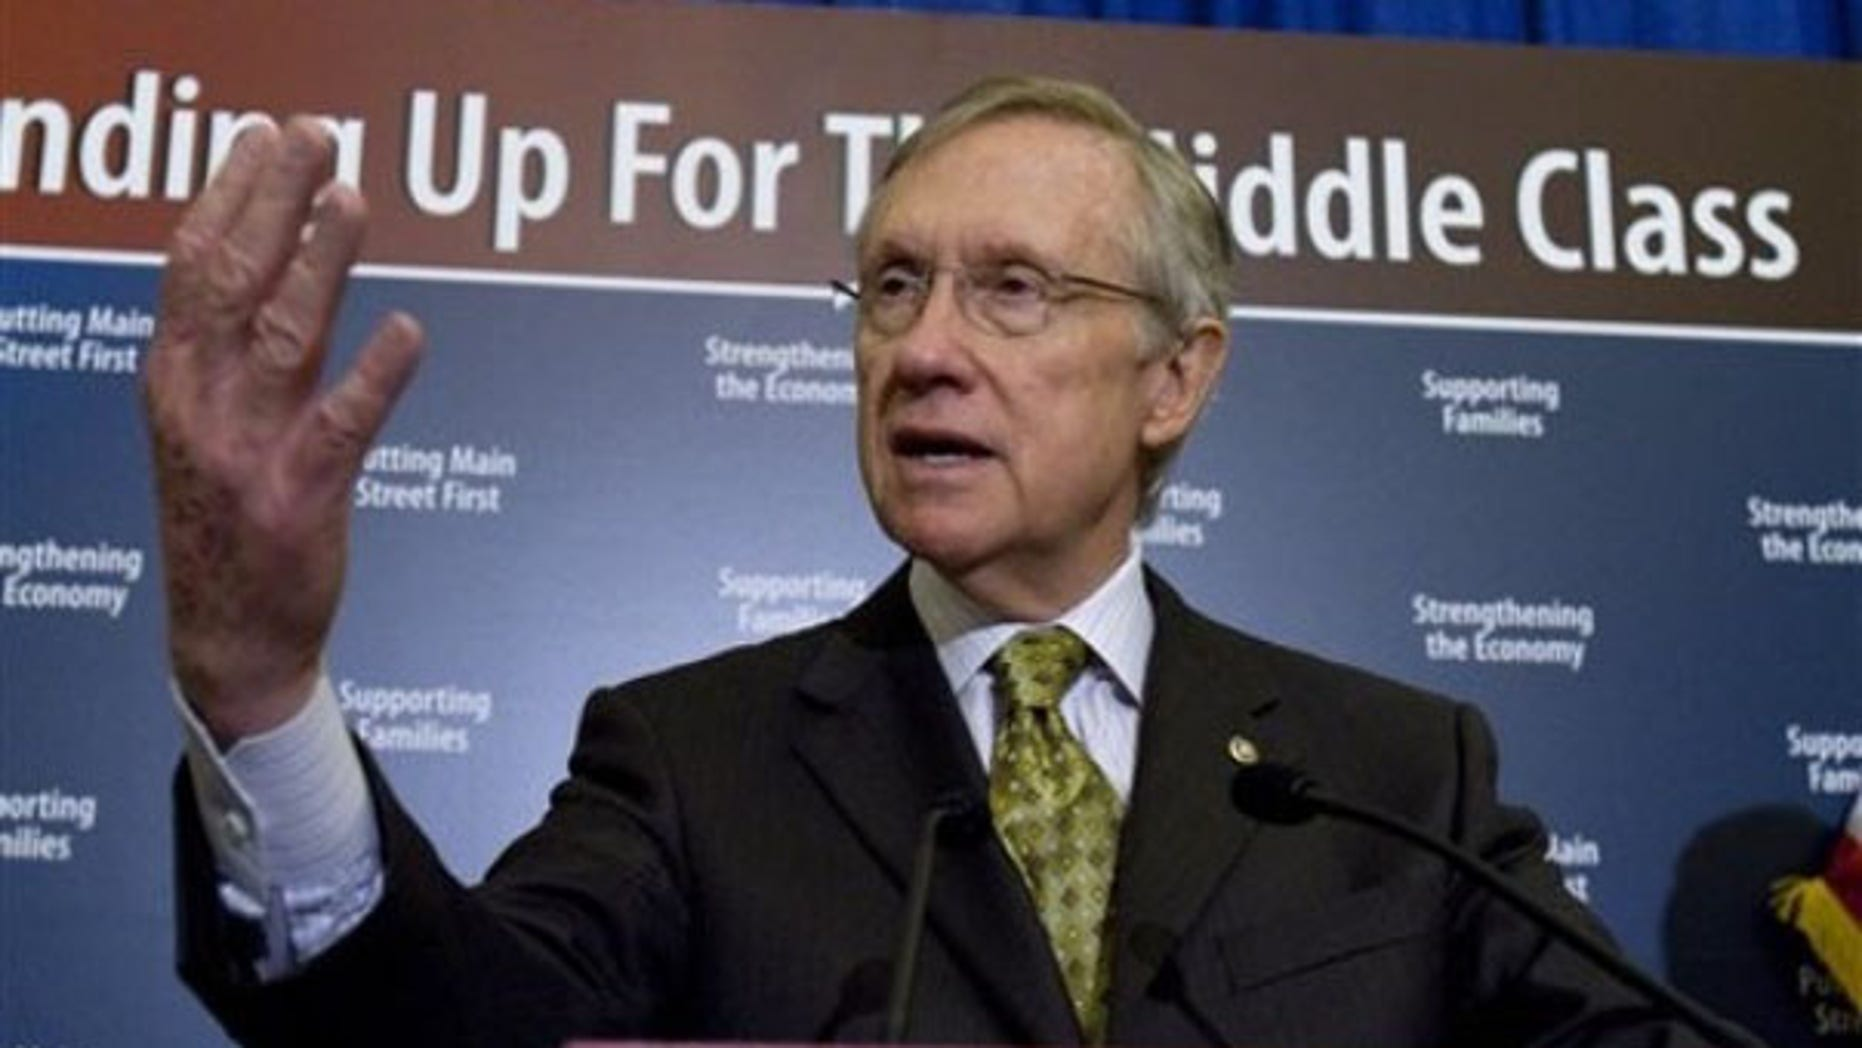 FILE: April 15, 2010: Senate Majority Leader Harry Reid at a news conference on Capitol Hill, in Washington, D.C.